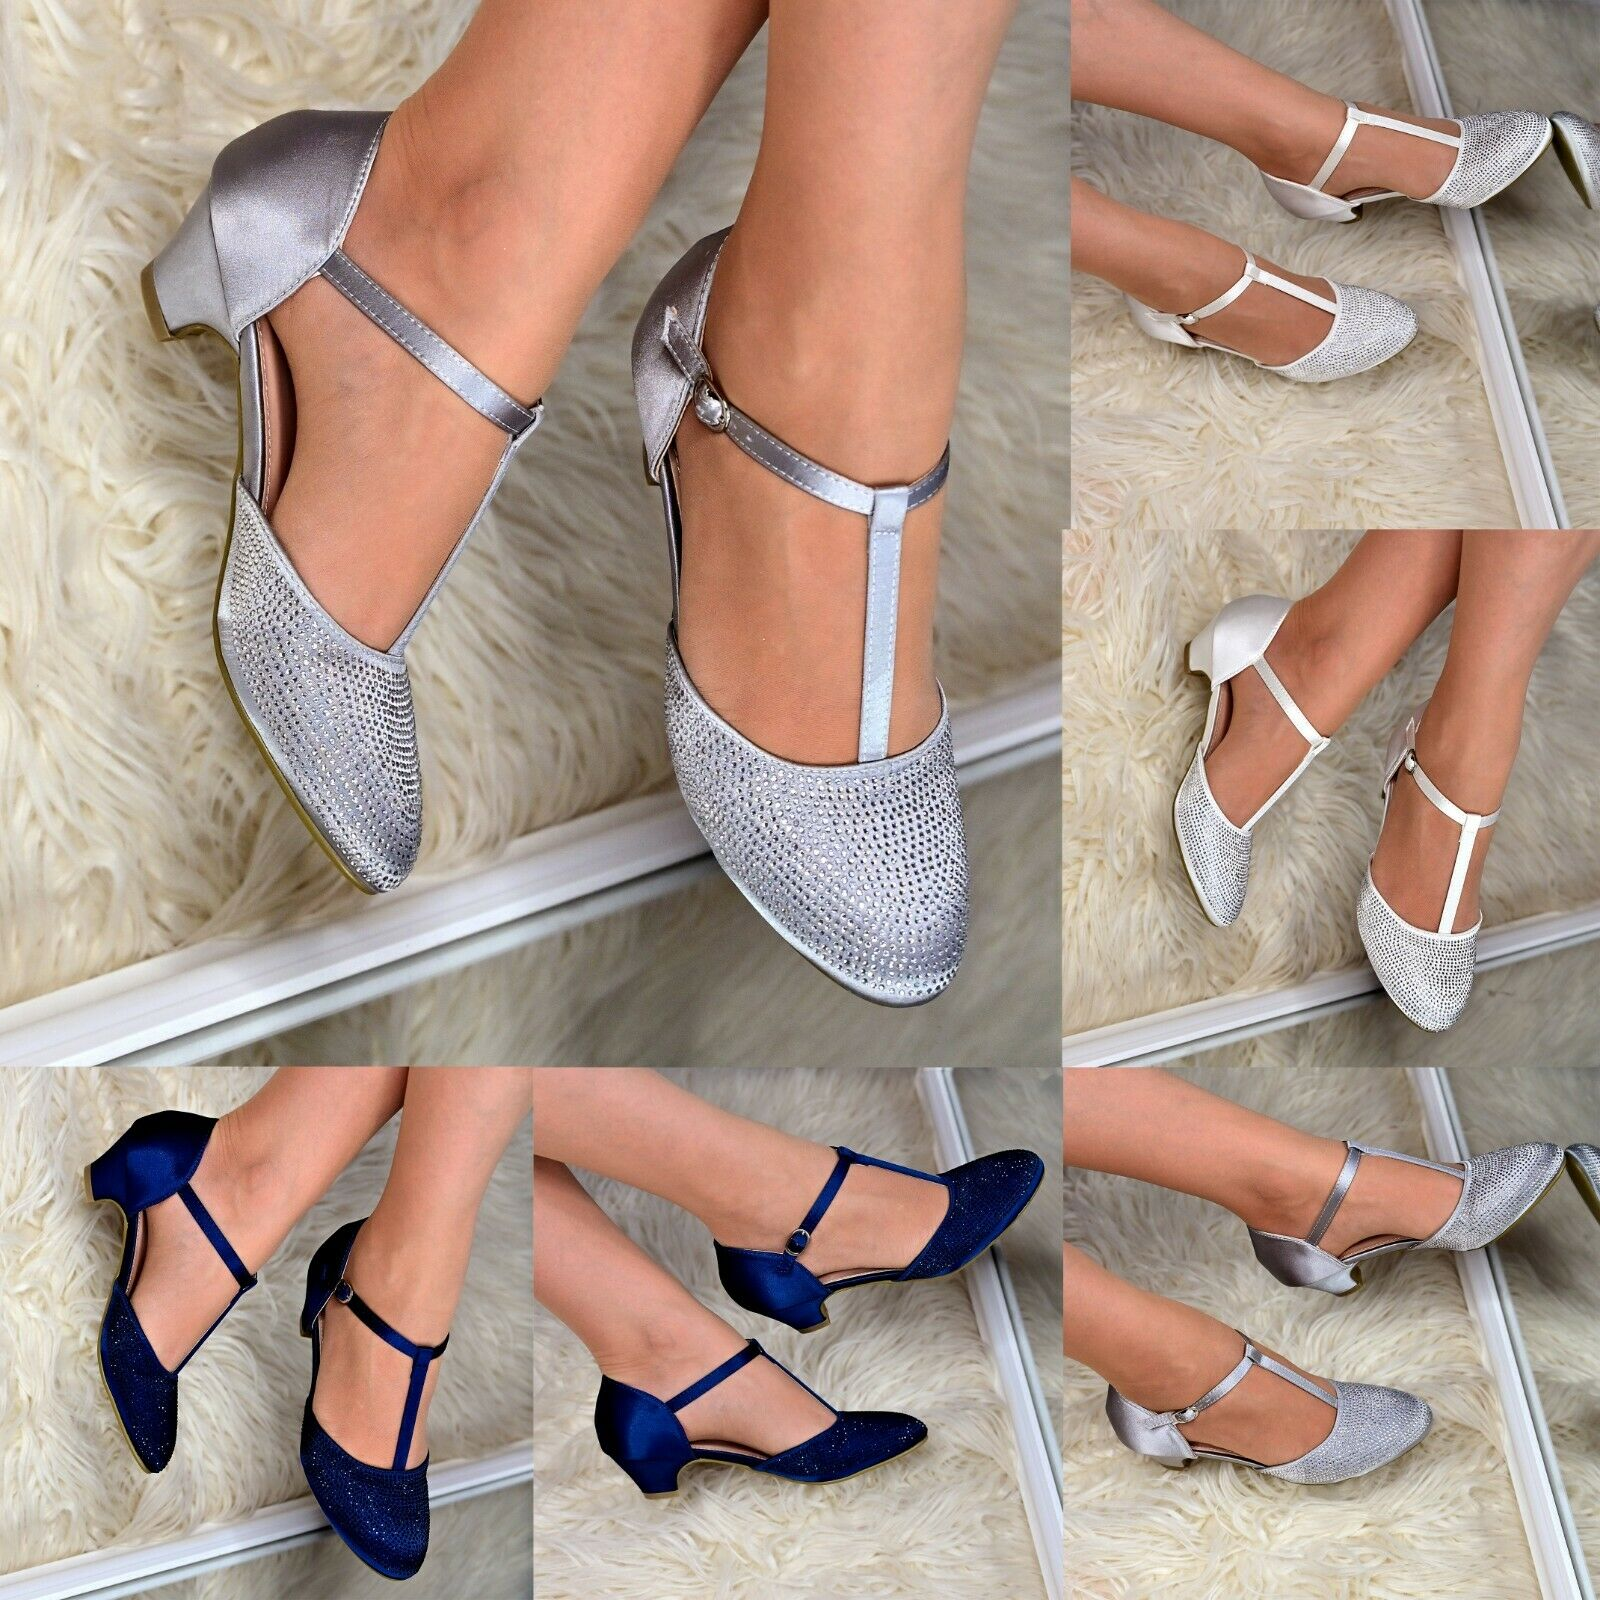 Womens Satin Low Heel Dress Shoes Rhinestone T-strap Pumps Occasion Sandals Size